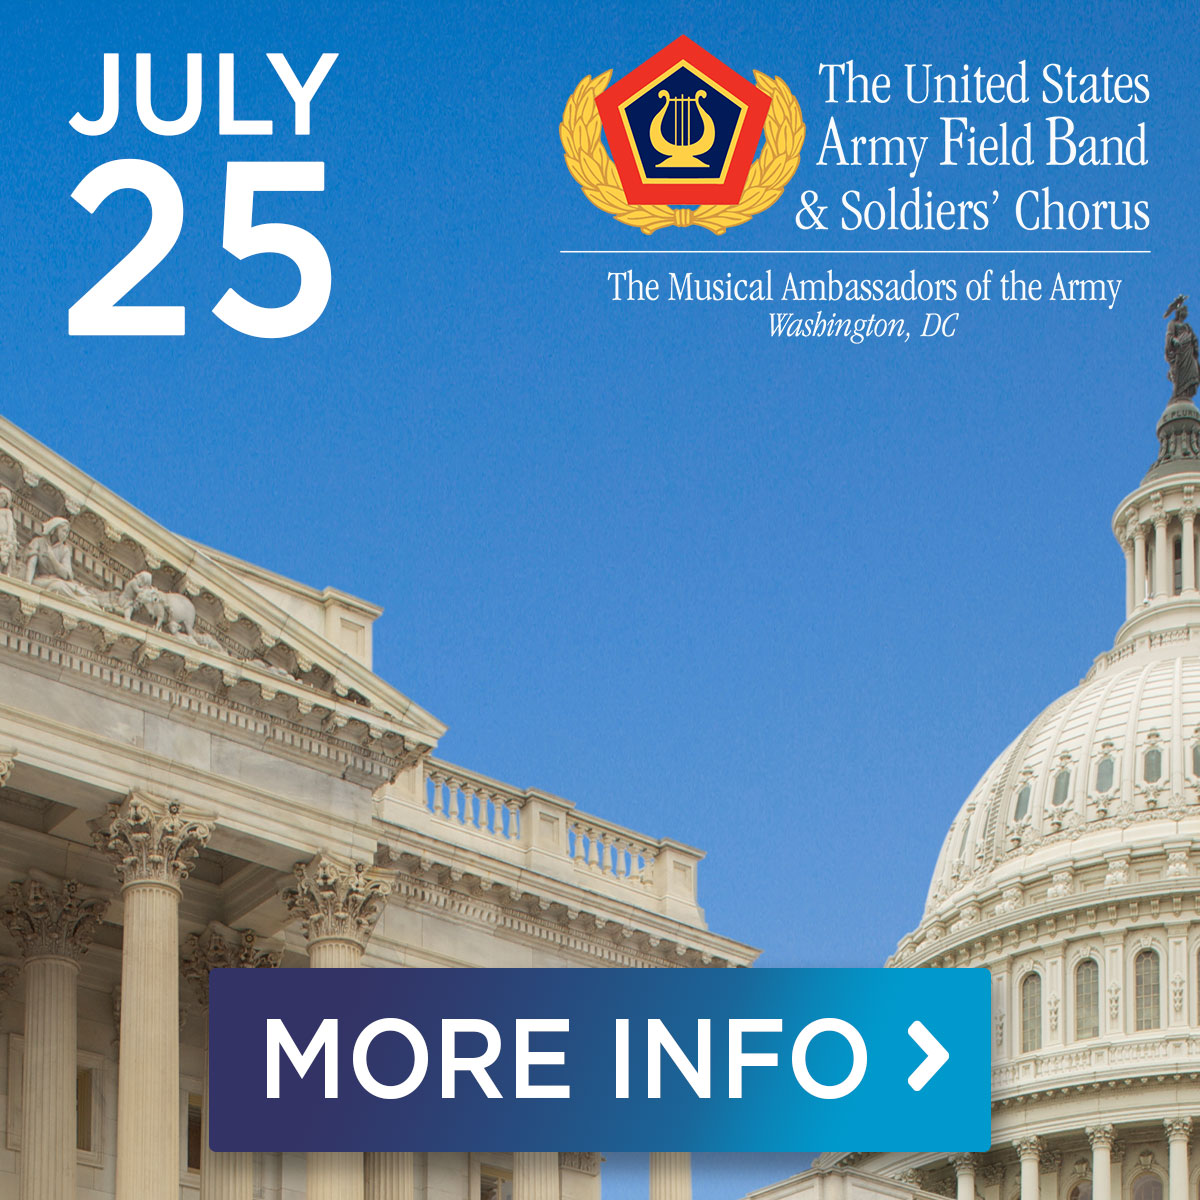 The United States Army Field Band & Soldiers' Chorus - July 25